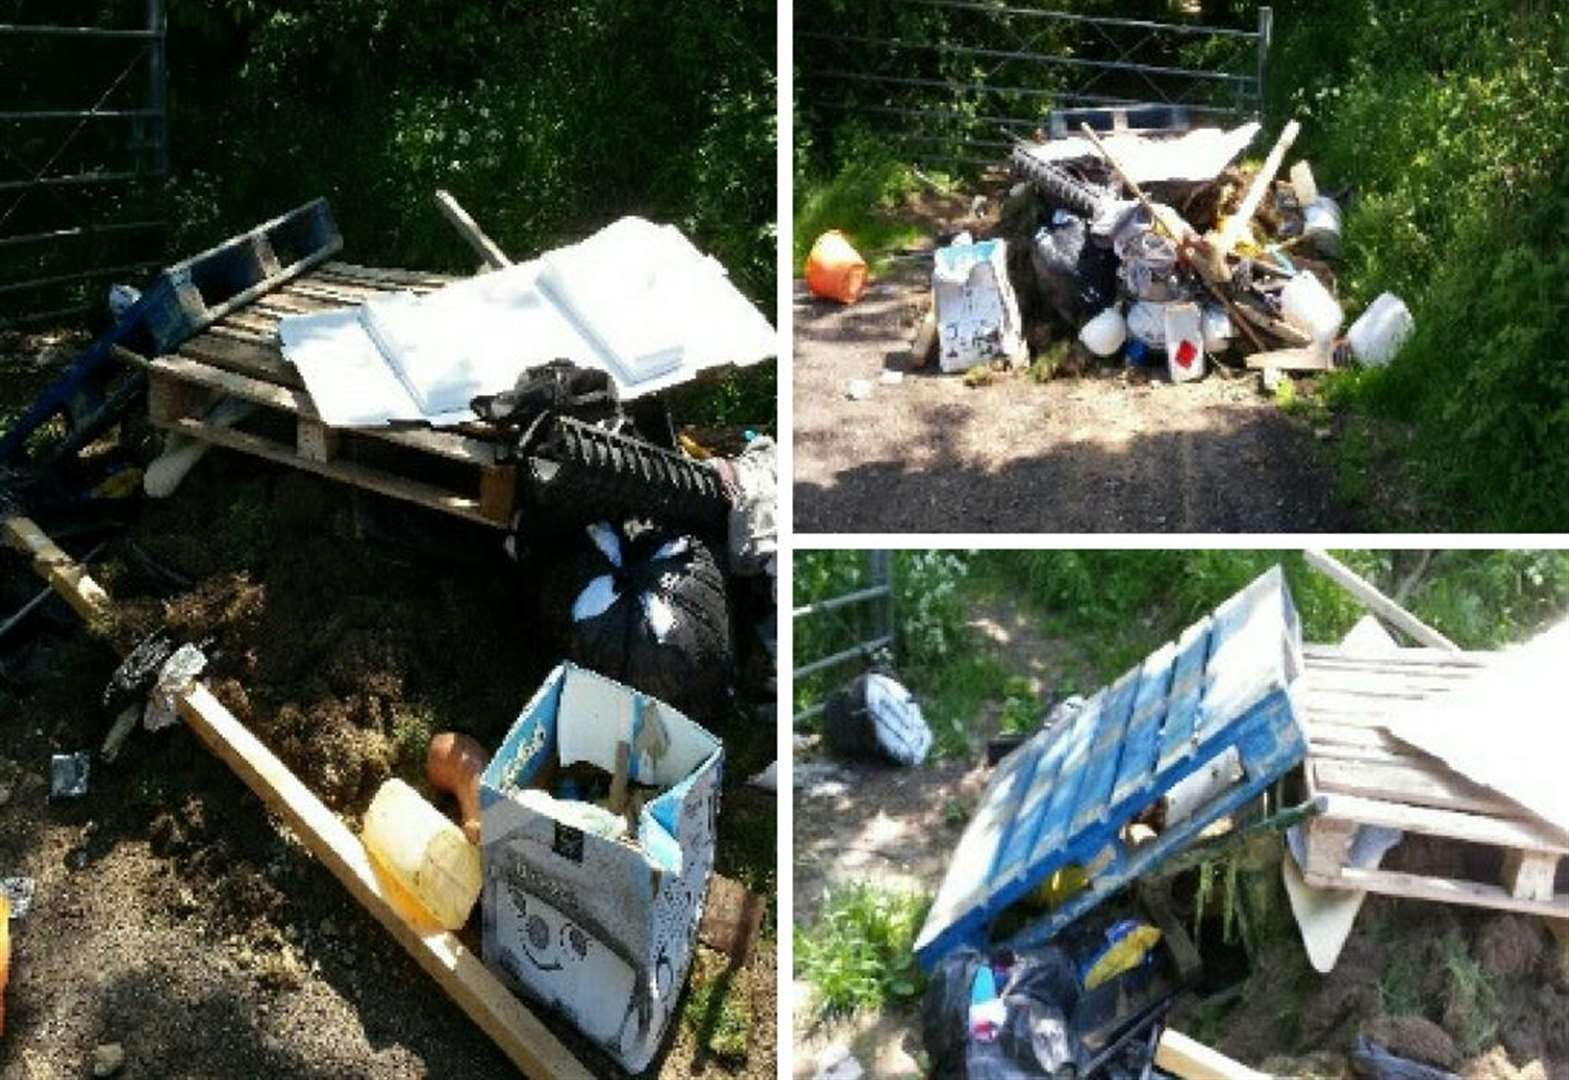 Fly-tipper receives hefty fine for dumping rubbish